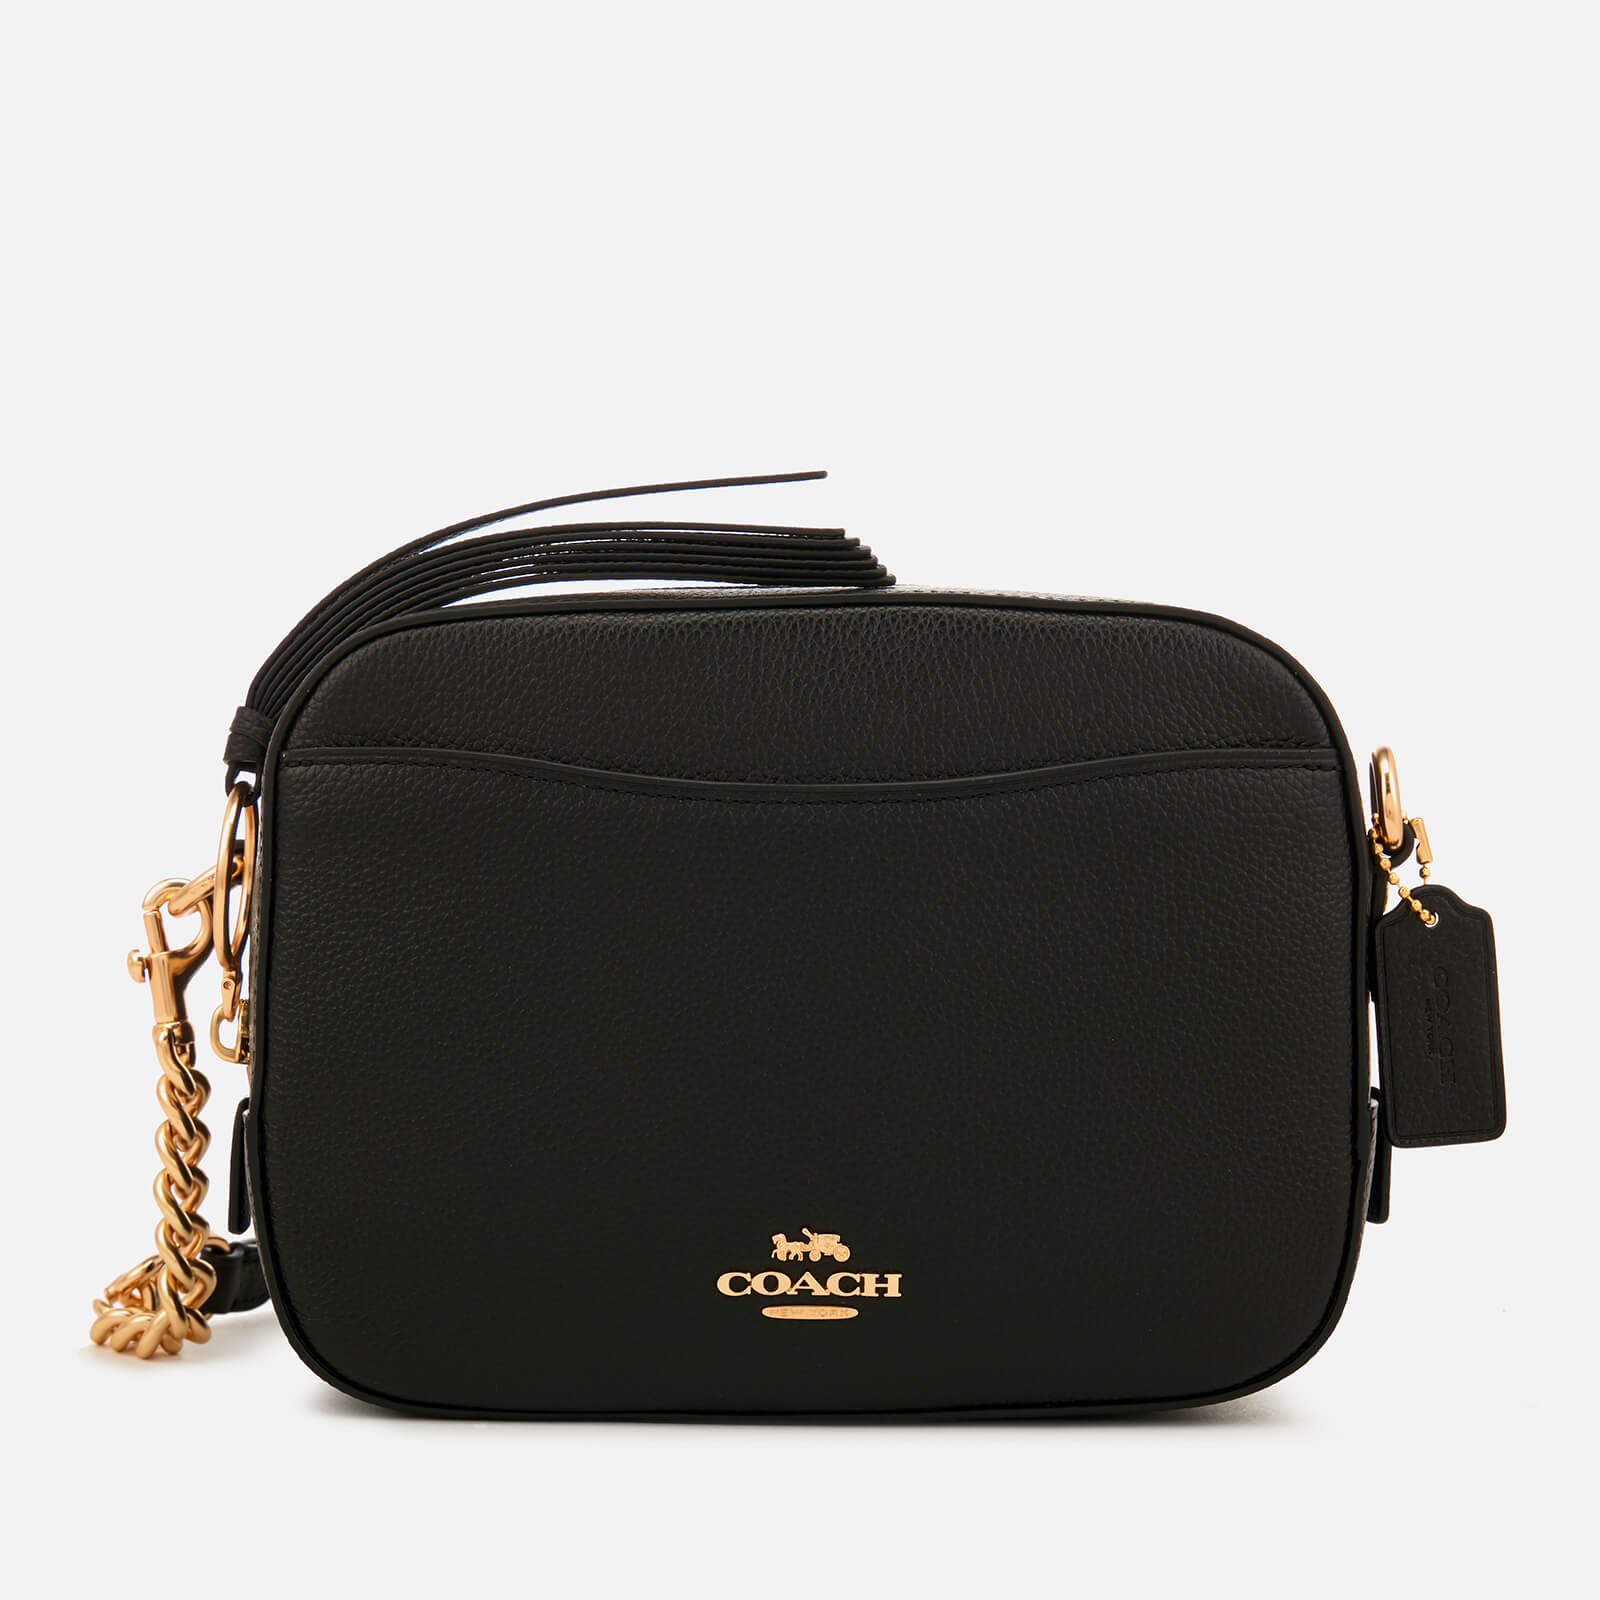 3b784778078f Coach Women s Polished Pebble Leather Camera Bag - Black - Free UK Delivery  over £50